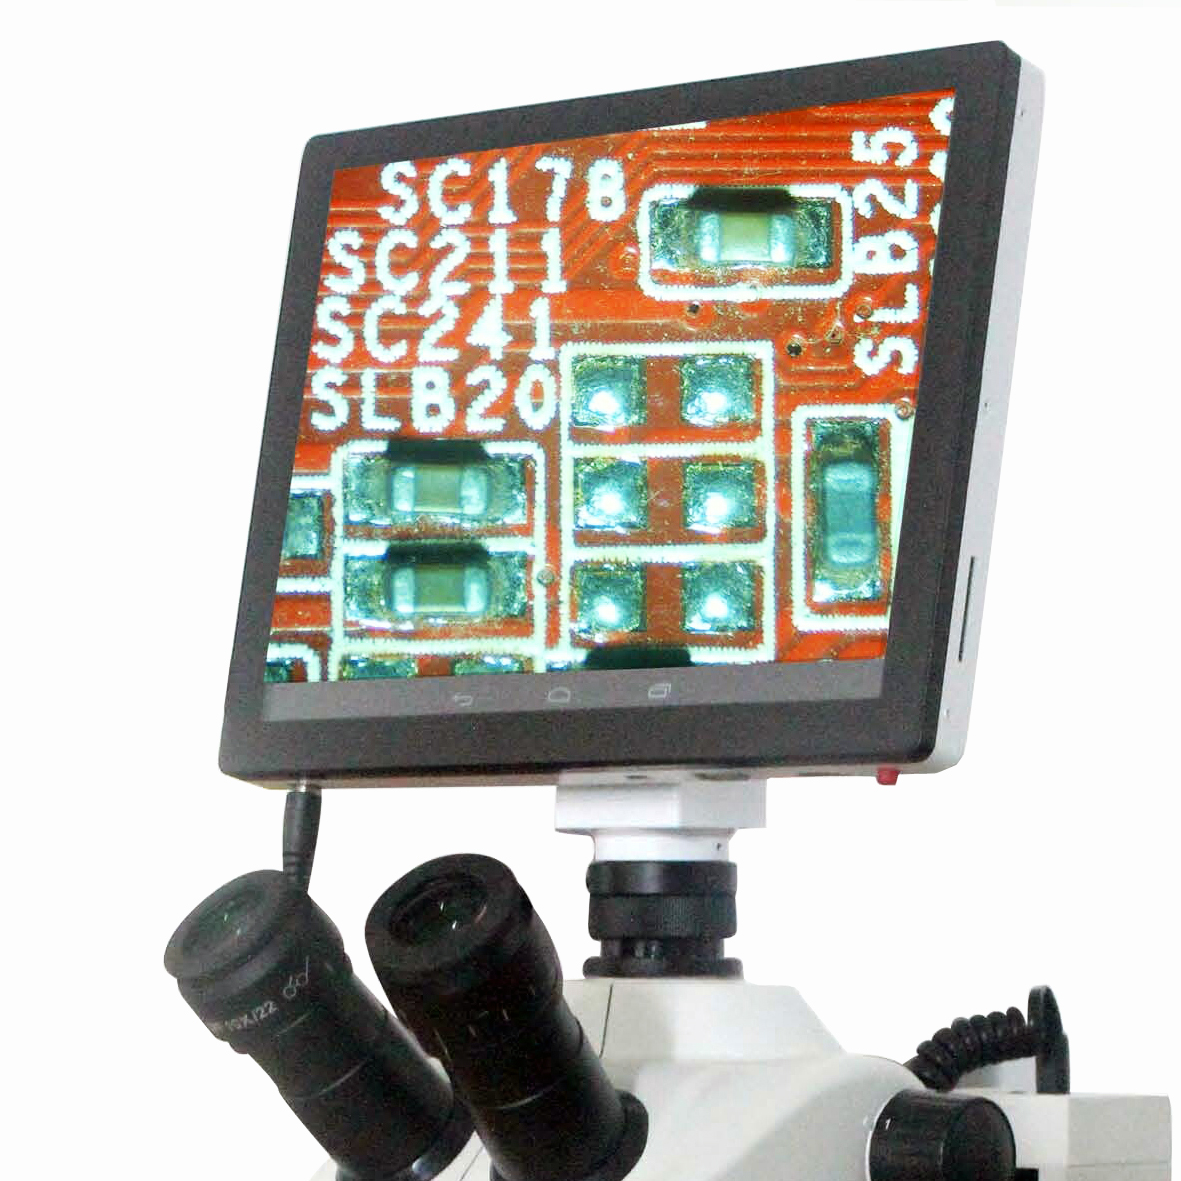 AmScope 5.0MP TouchPad Microscope Camera New by